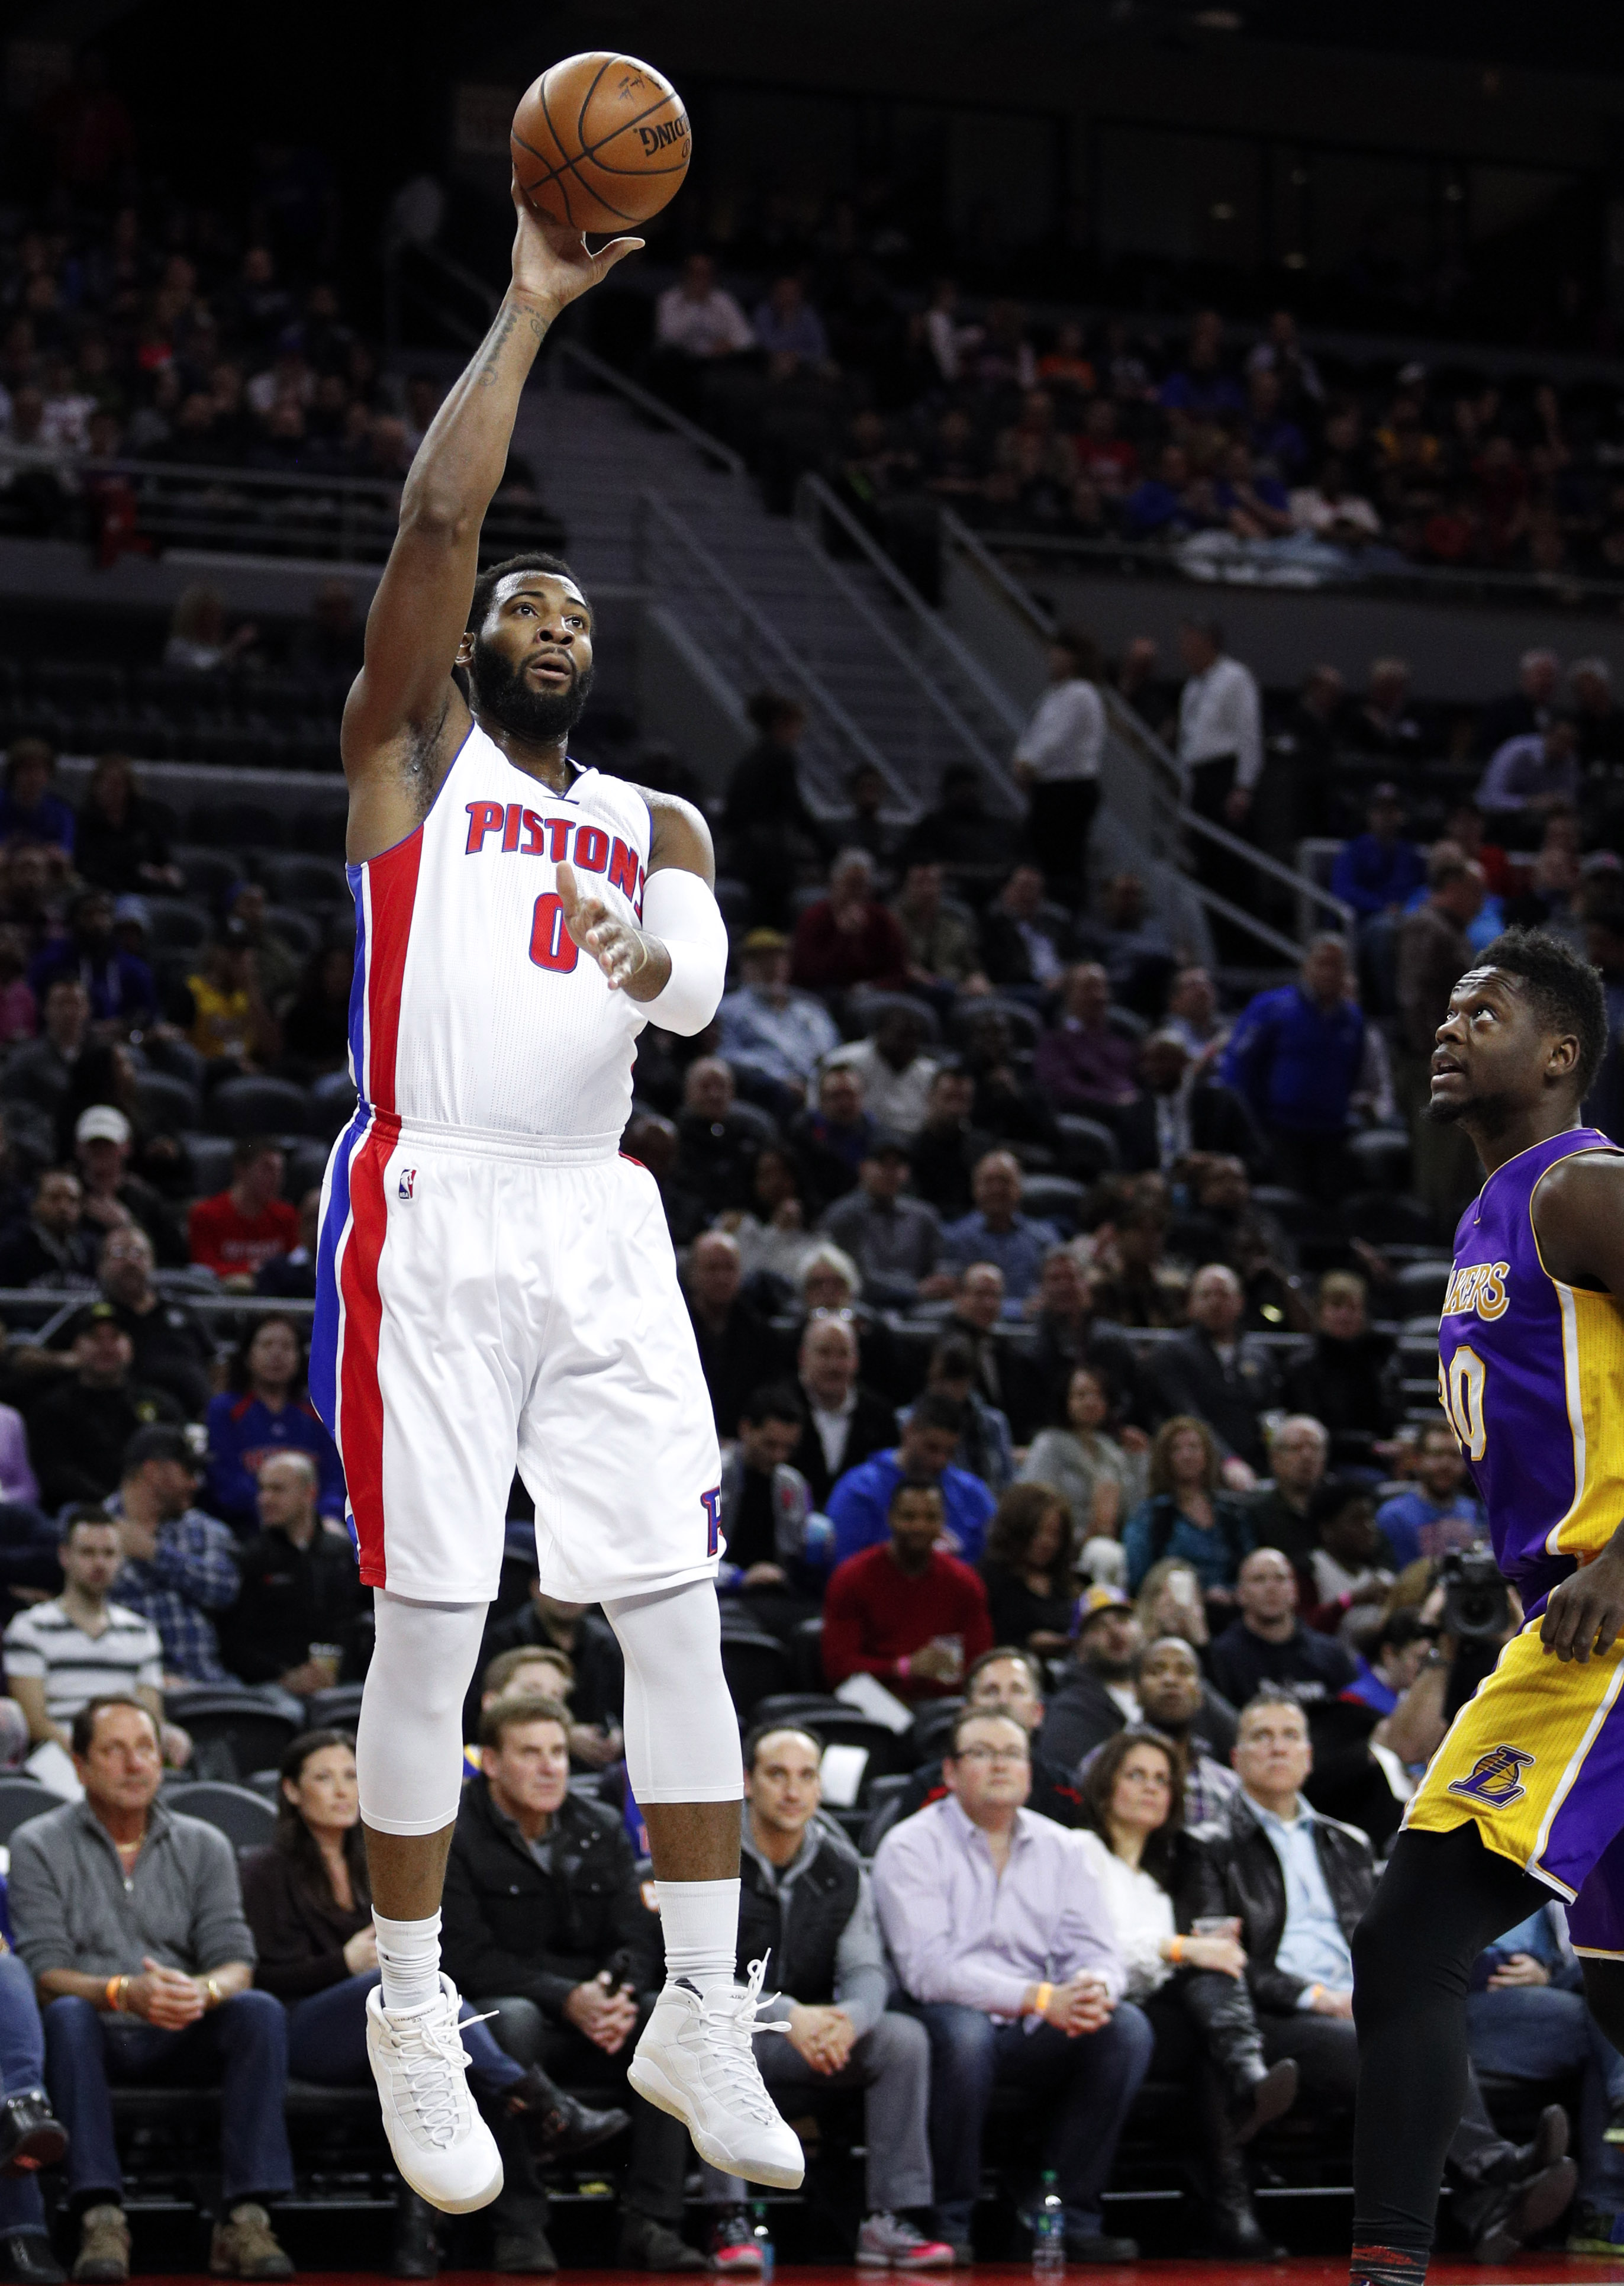 9865955-nba-los-angeles-lakers-at-detroit-pistons